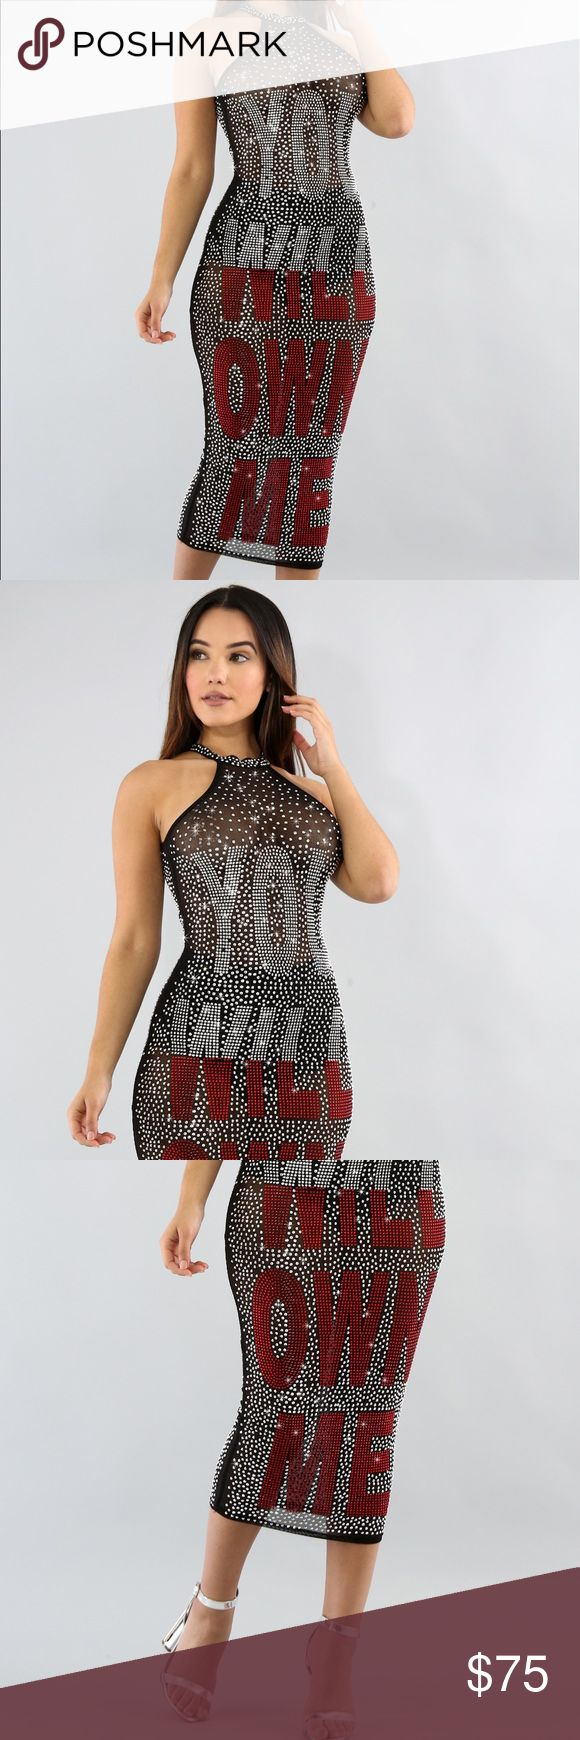 COMING SOON Rihanna inspired rhinestone dress This rhinestone see through sheer dress features, a semi-stretch fabric, rhinestone throughout, halter neckline, word. saying(YOU WILL OWN ME), finished with a hidden back zipper closure. 95% Nylon 5% spandex Dresses Midi